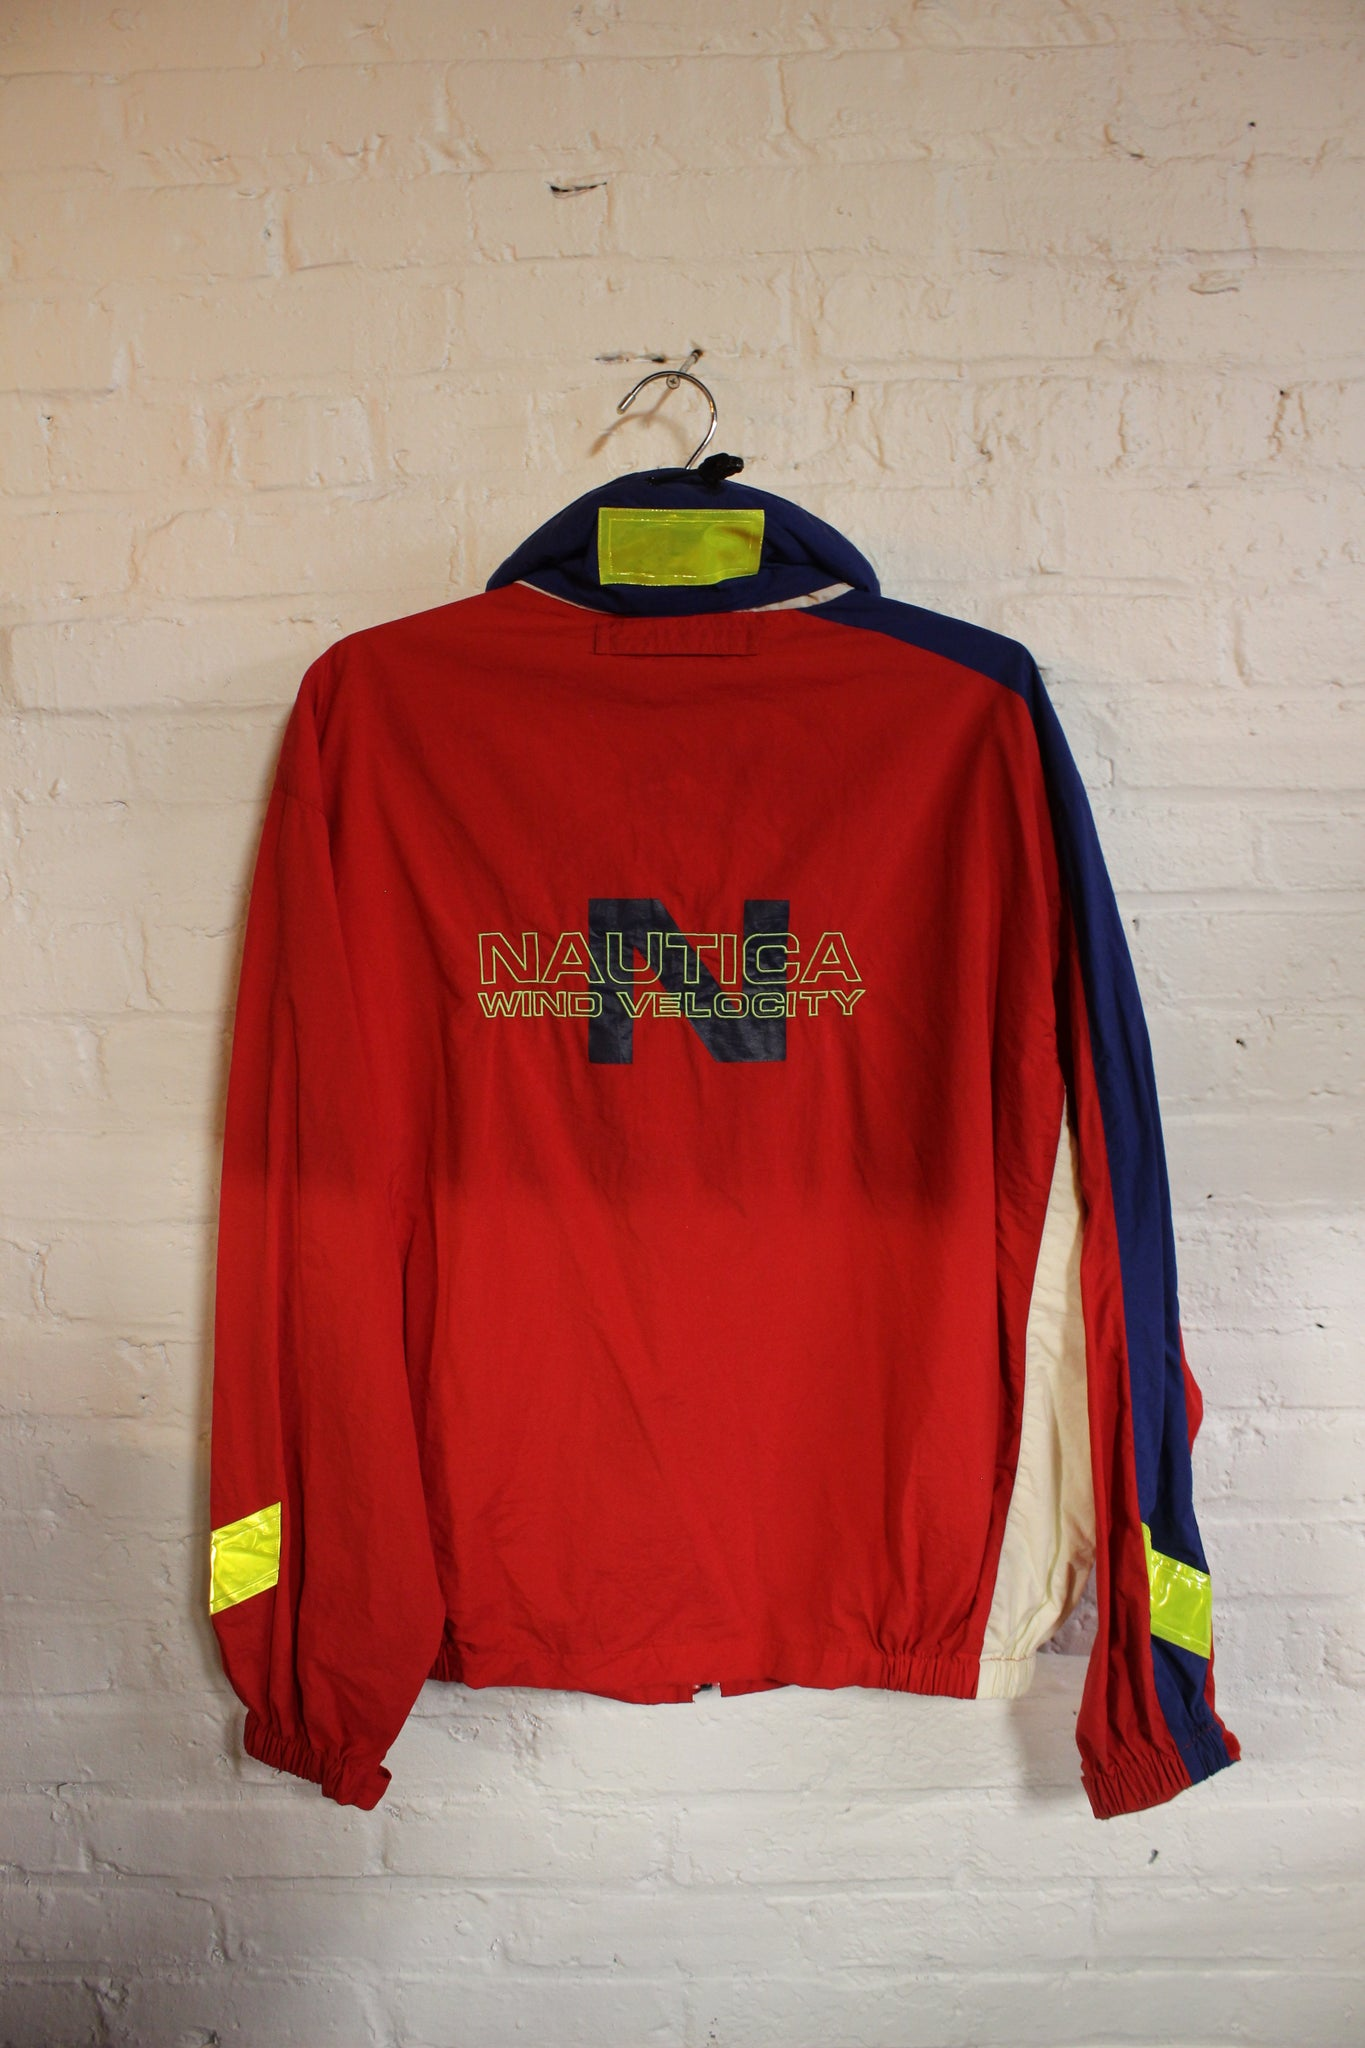 Nautica Competition Jacket